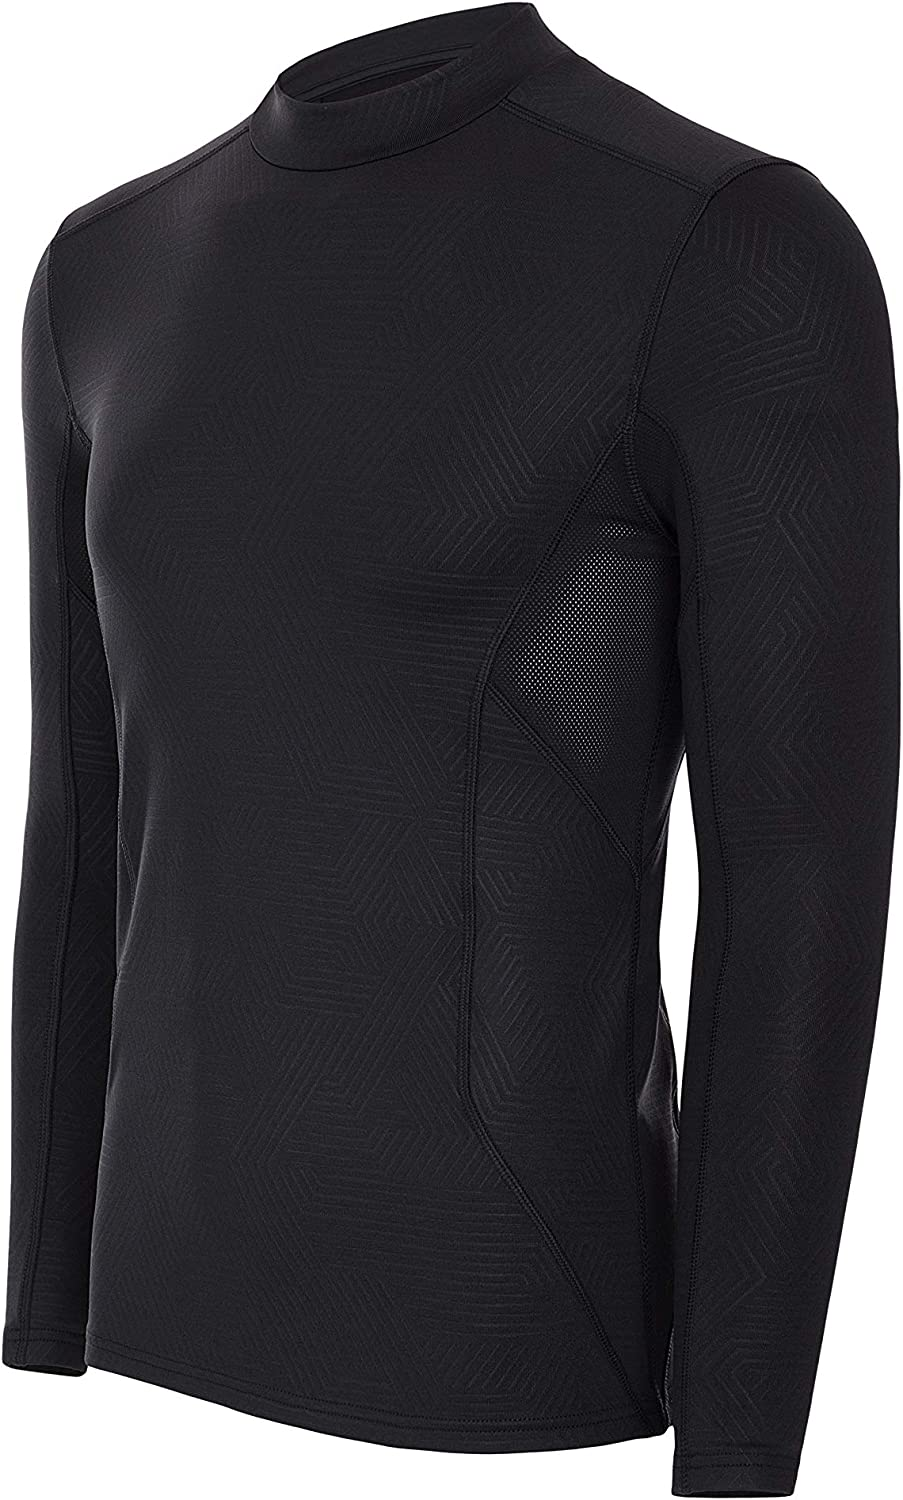 Mens Mock Neck Warm Long Sleeve Compression Top with Mesh Panel